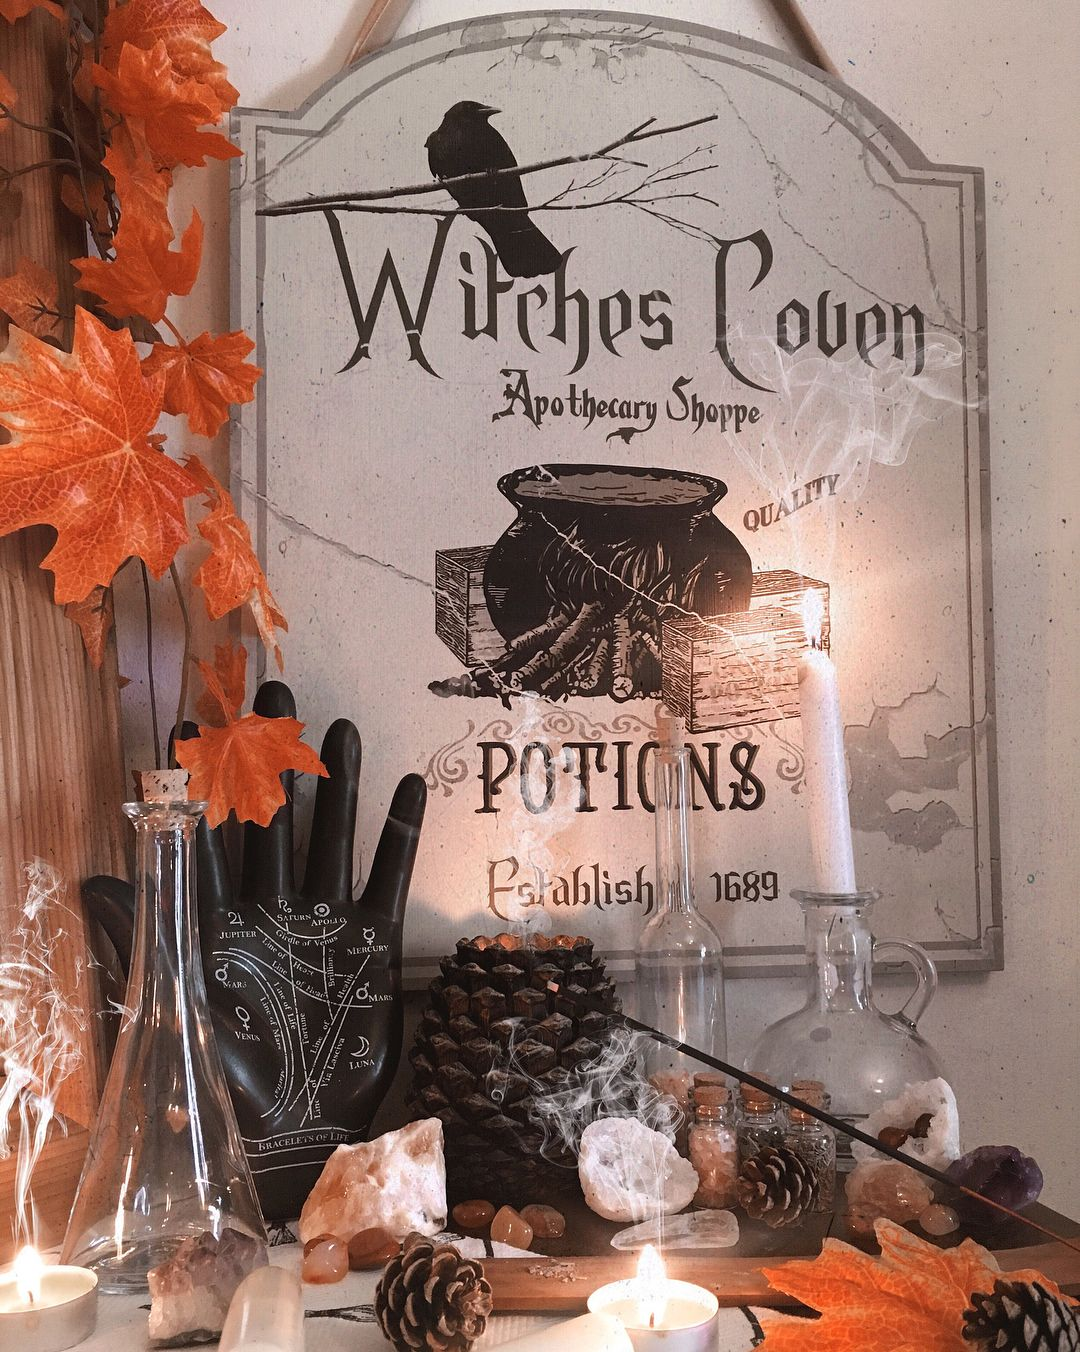 Pin by East Coast Pearl on ⋆ witchy   Witch coven, Eclectic witch